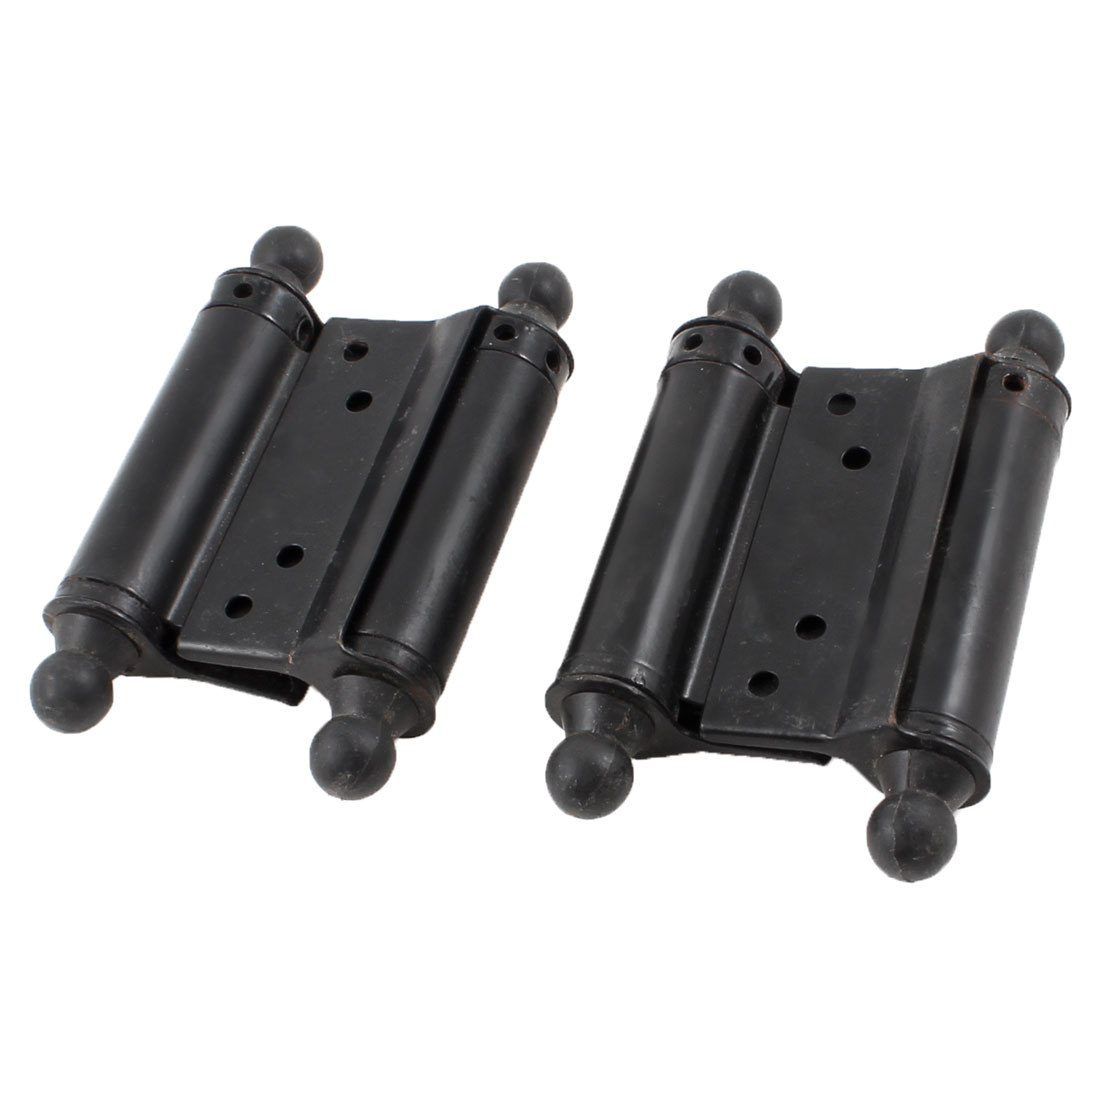 2 Pcs Black Dual Spring Loaded Metal House Room Gate Door Hinges 11cm